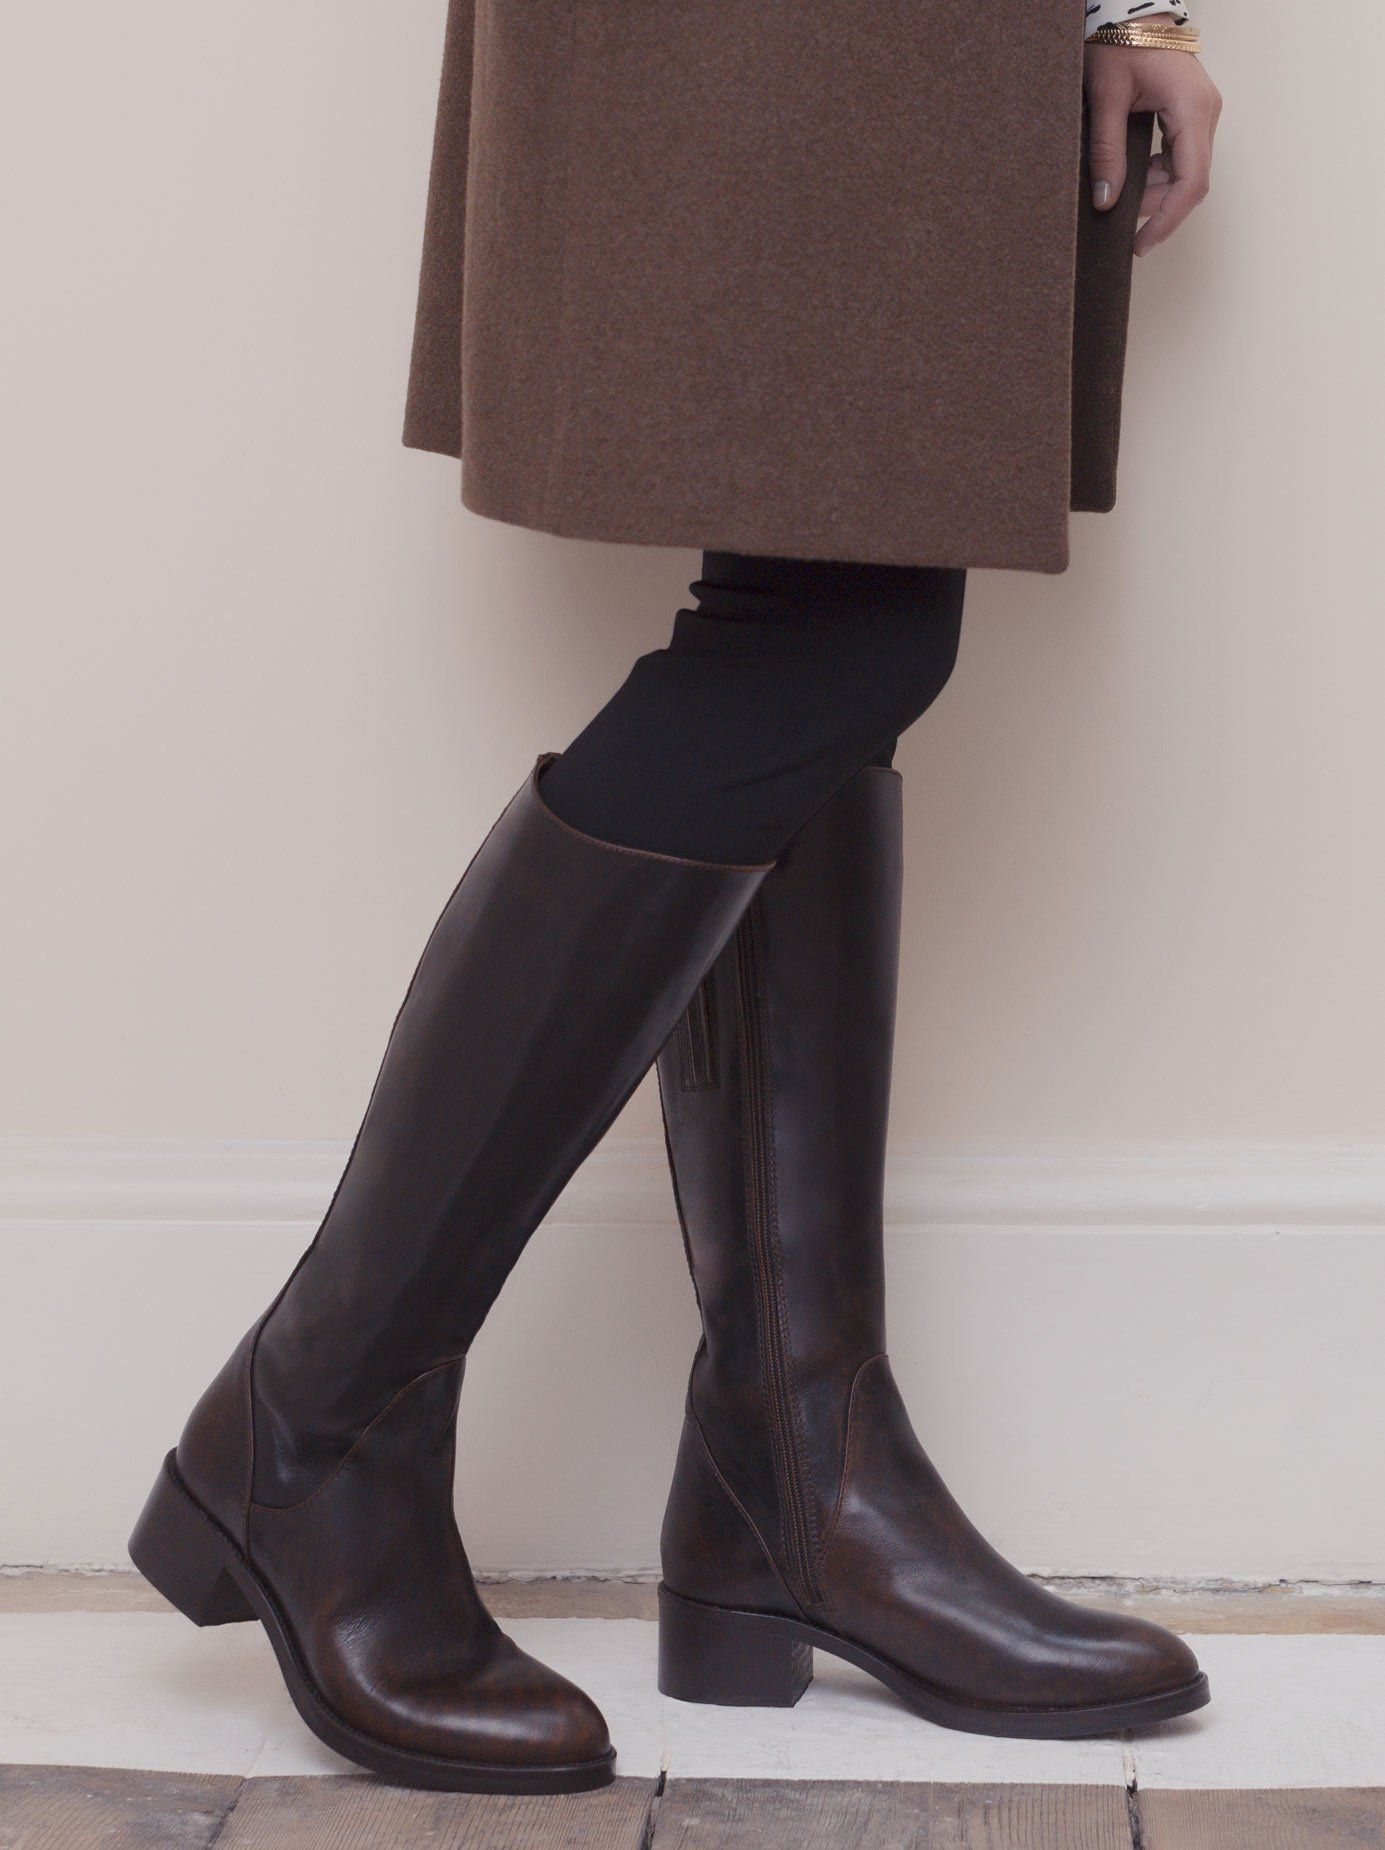 5ae893f1845 Where to Shop for Stylish Plus Size Wide Calf Boots ...